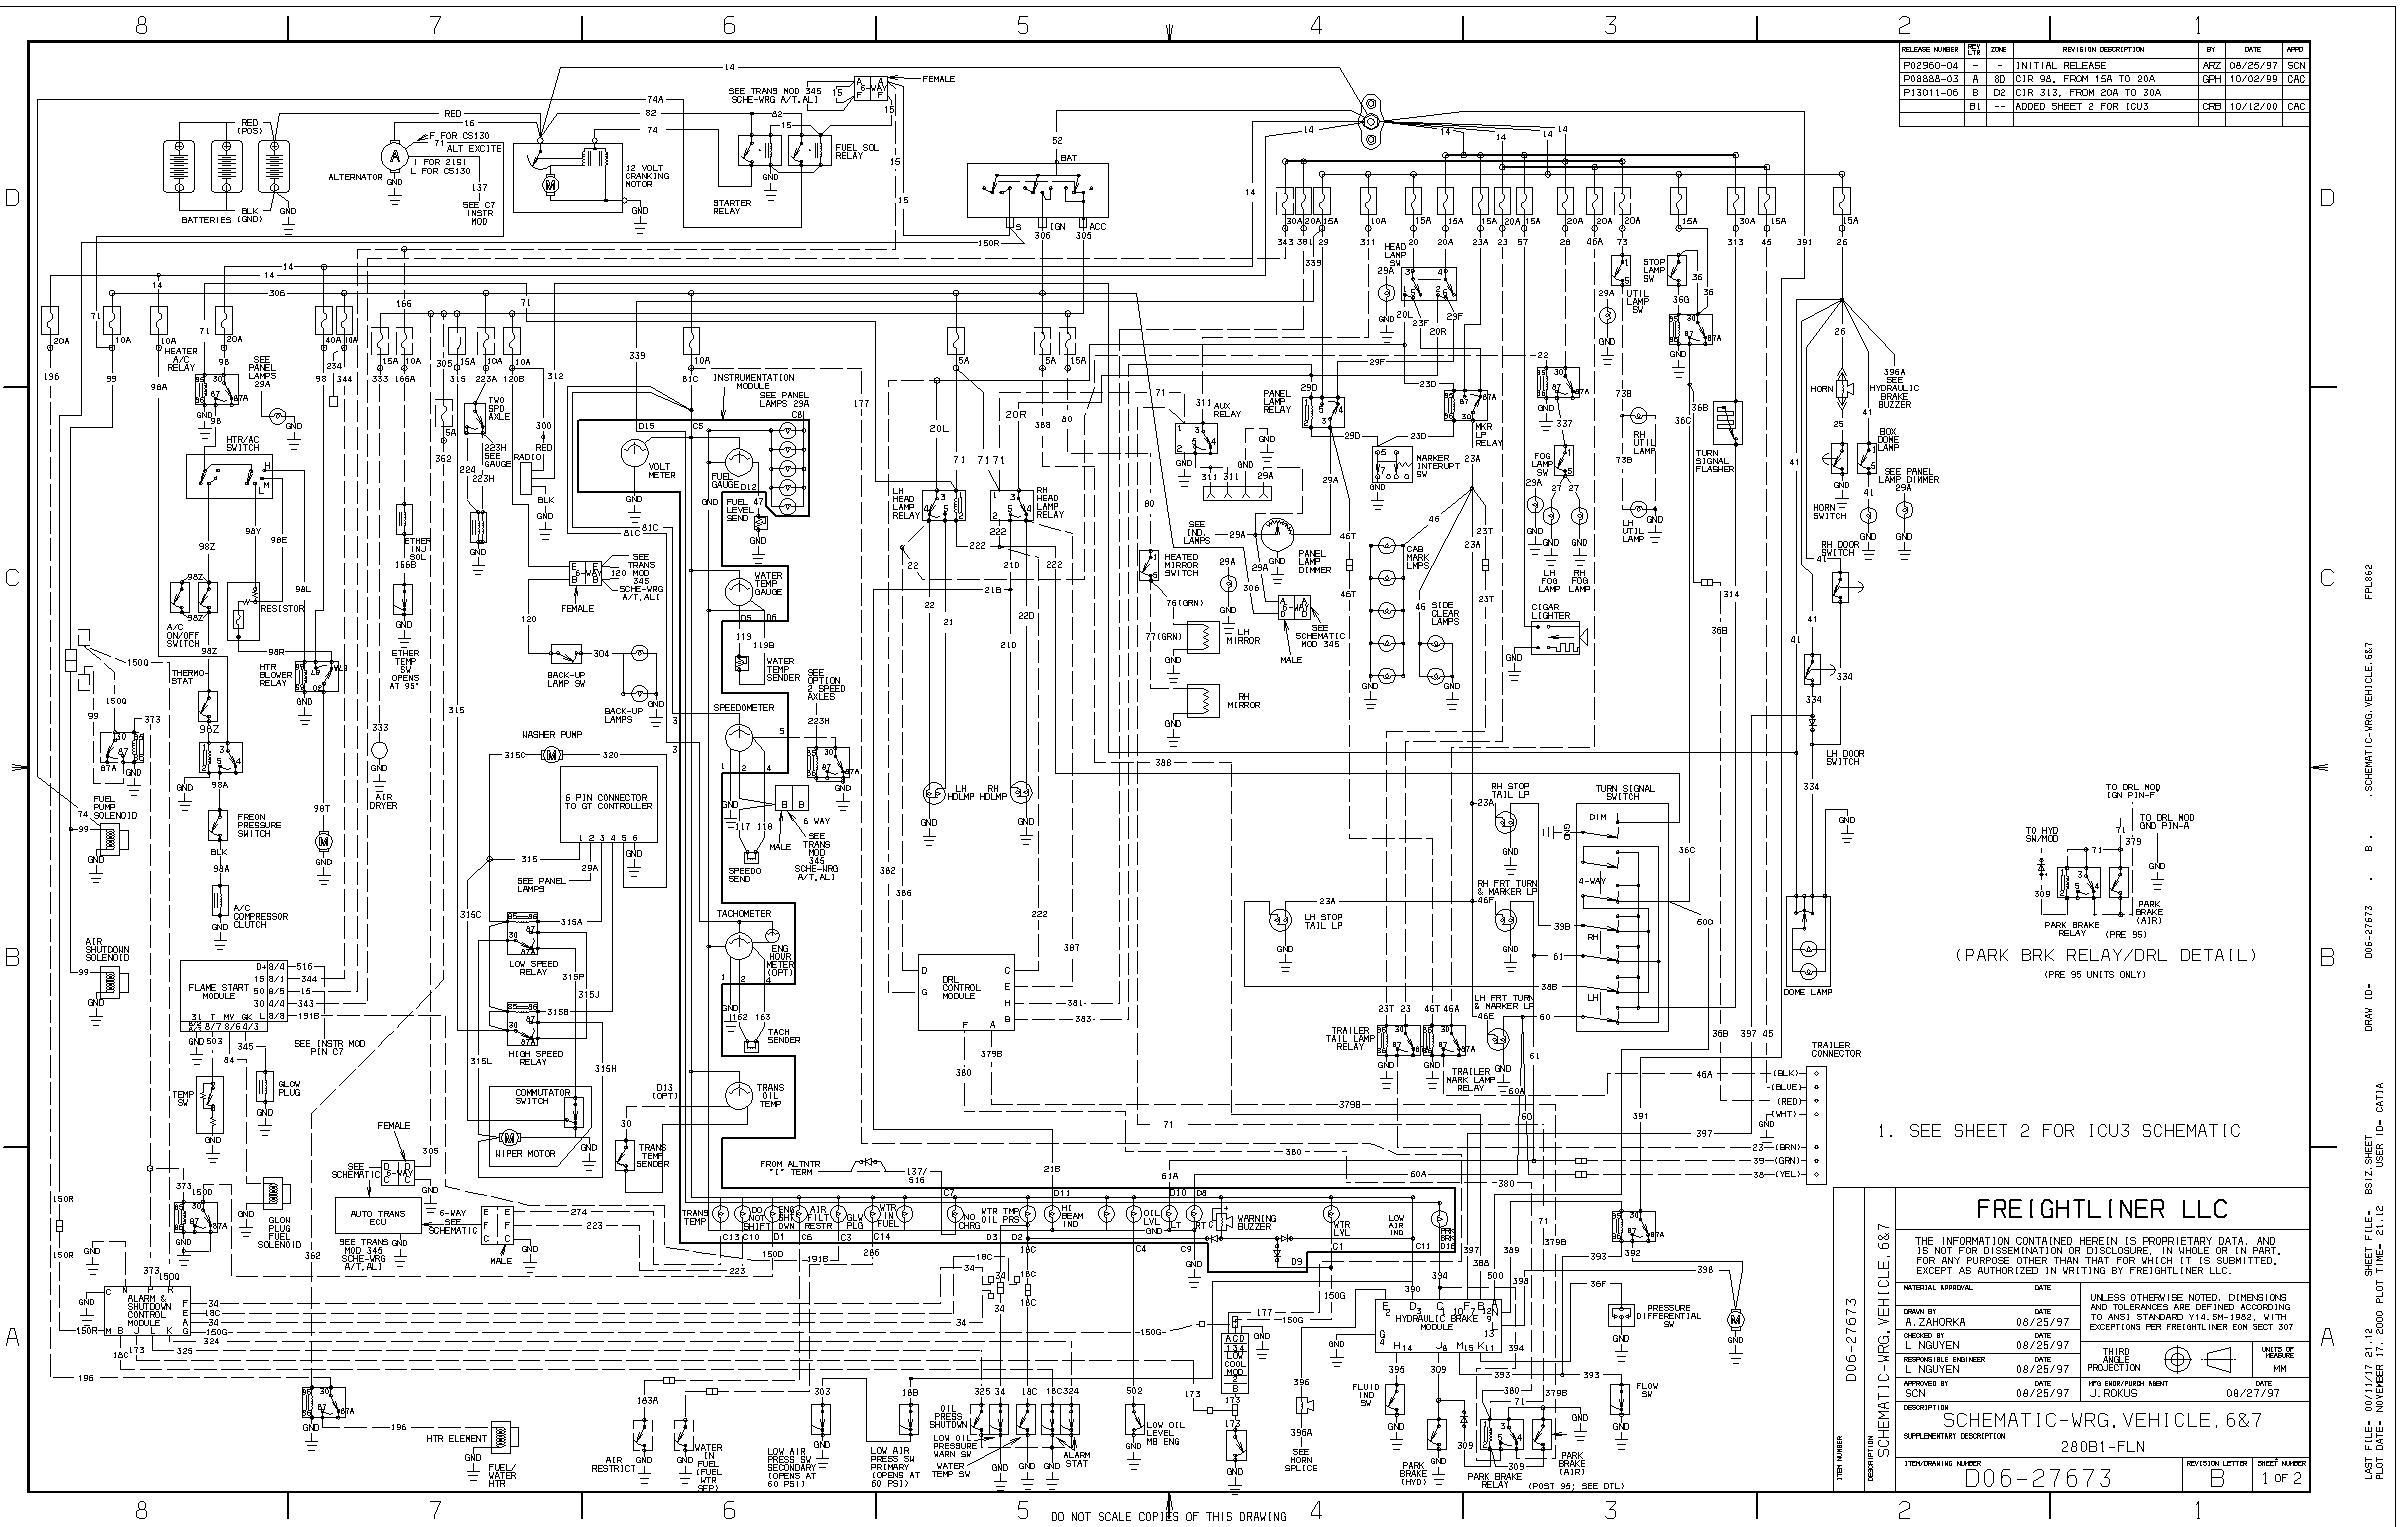 Astonishing Freightliner Wiring Diagrams Free 51 In And Chassis Diagram